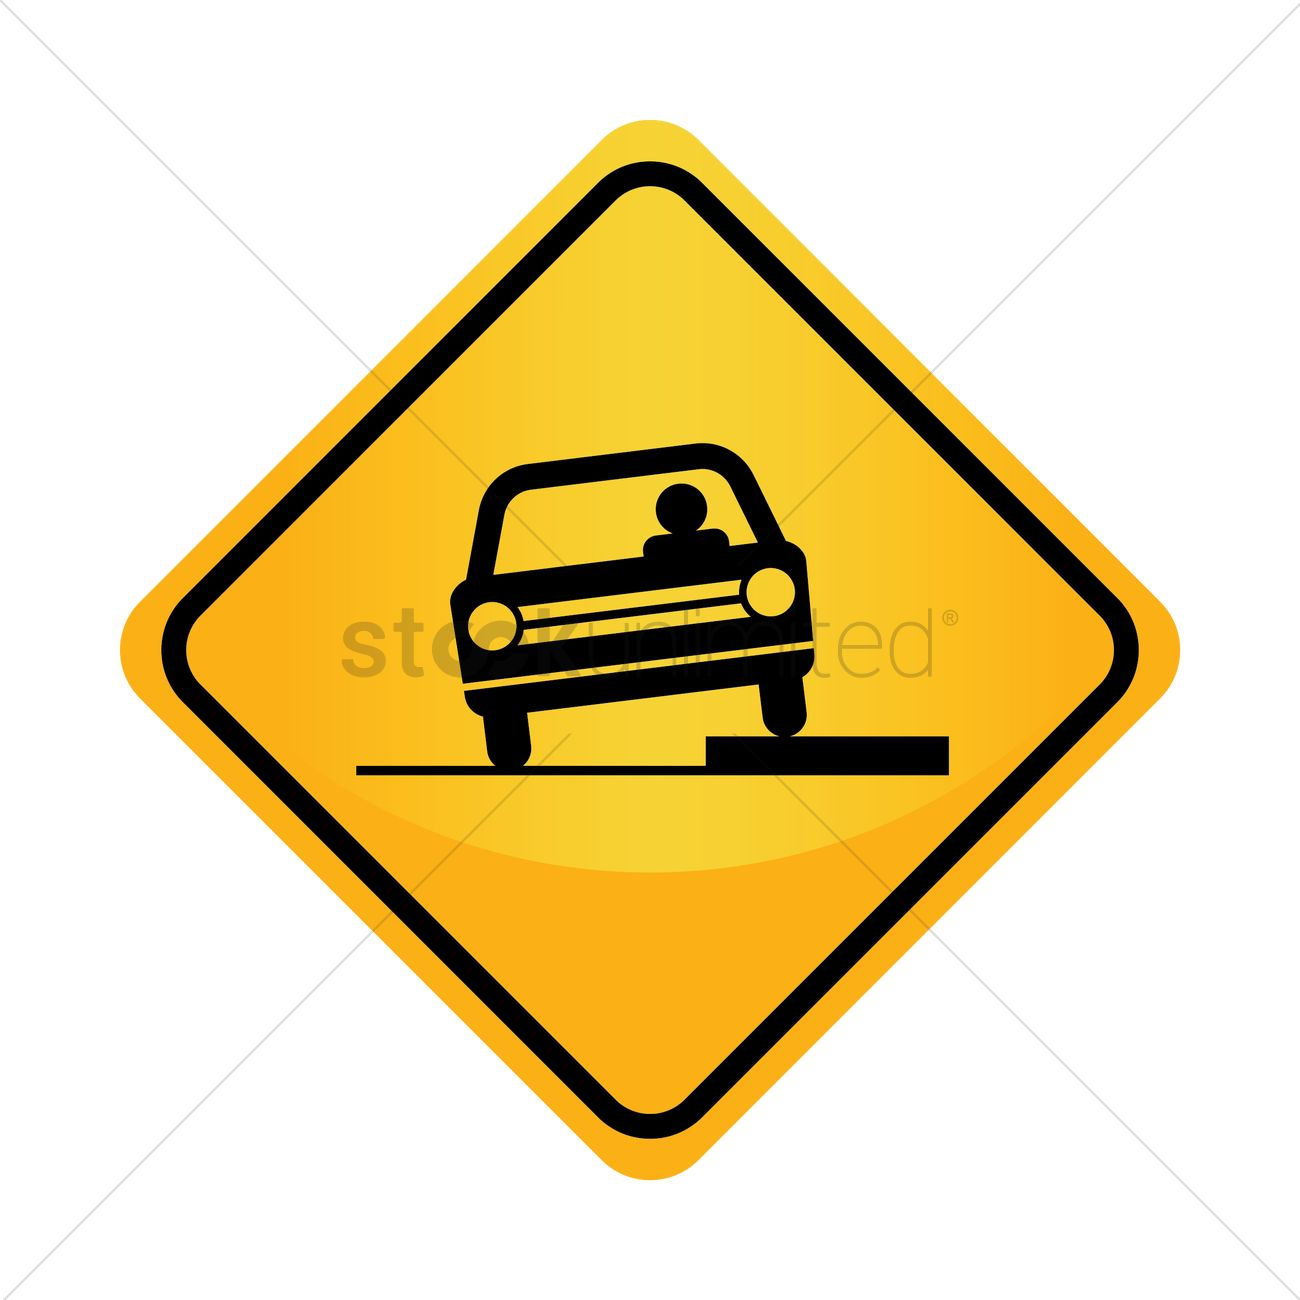 Uneven road uneven road roads street streets sign signs red shoulder drop off sign biocorpaavc Choice Image